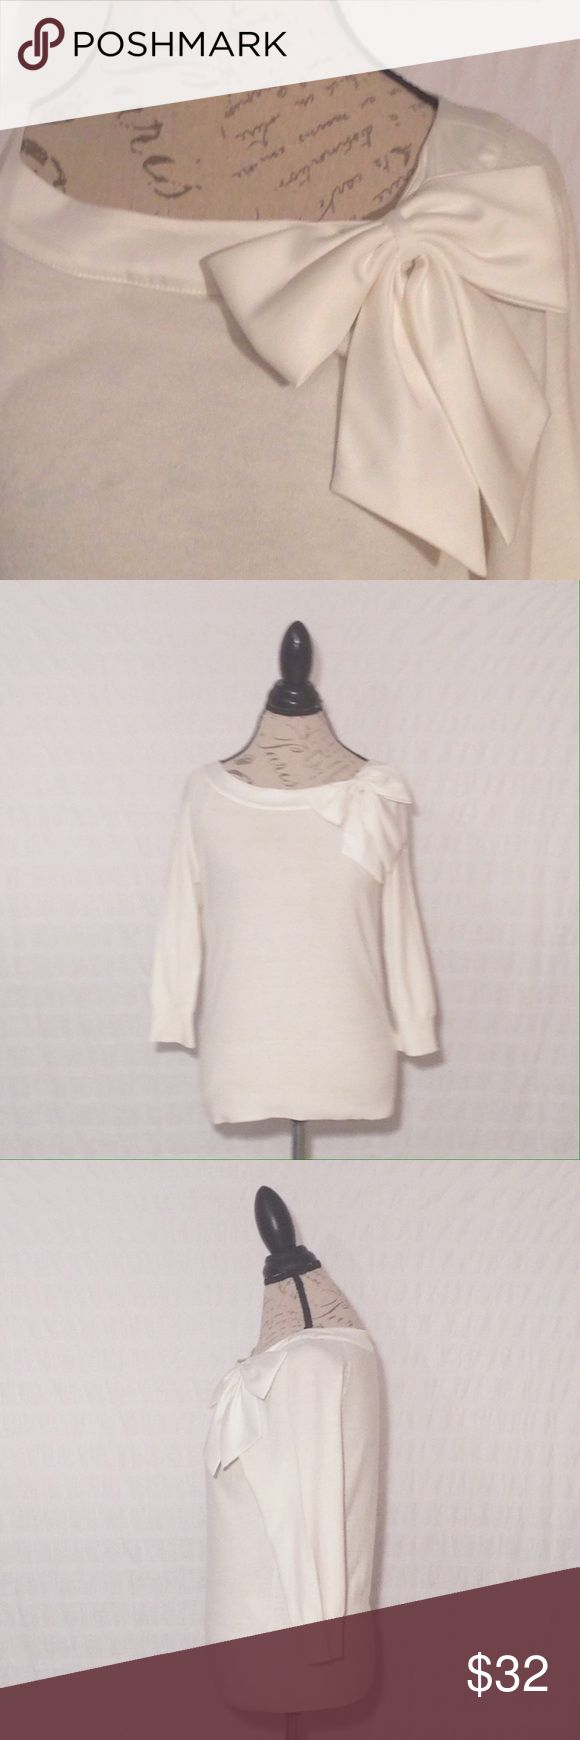 WHBM Cream colored Bow front top 3/4 sleeves Beautiful top in great condition minimal piling if any and no flaws or stains.  Measurements and fabric content are in photos.  Smoke and pet free home.  Ships same or next day!! White House Black Market Tops